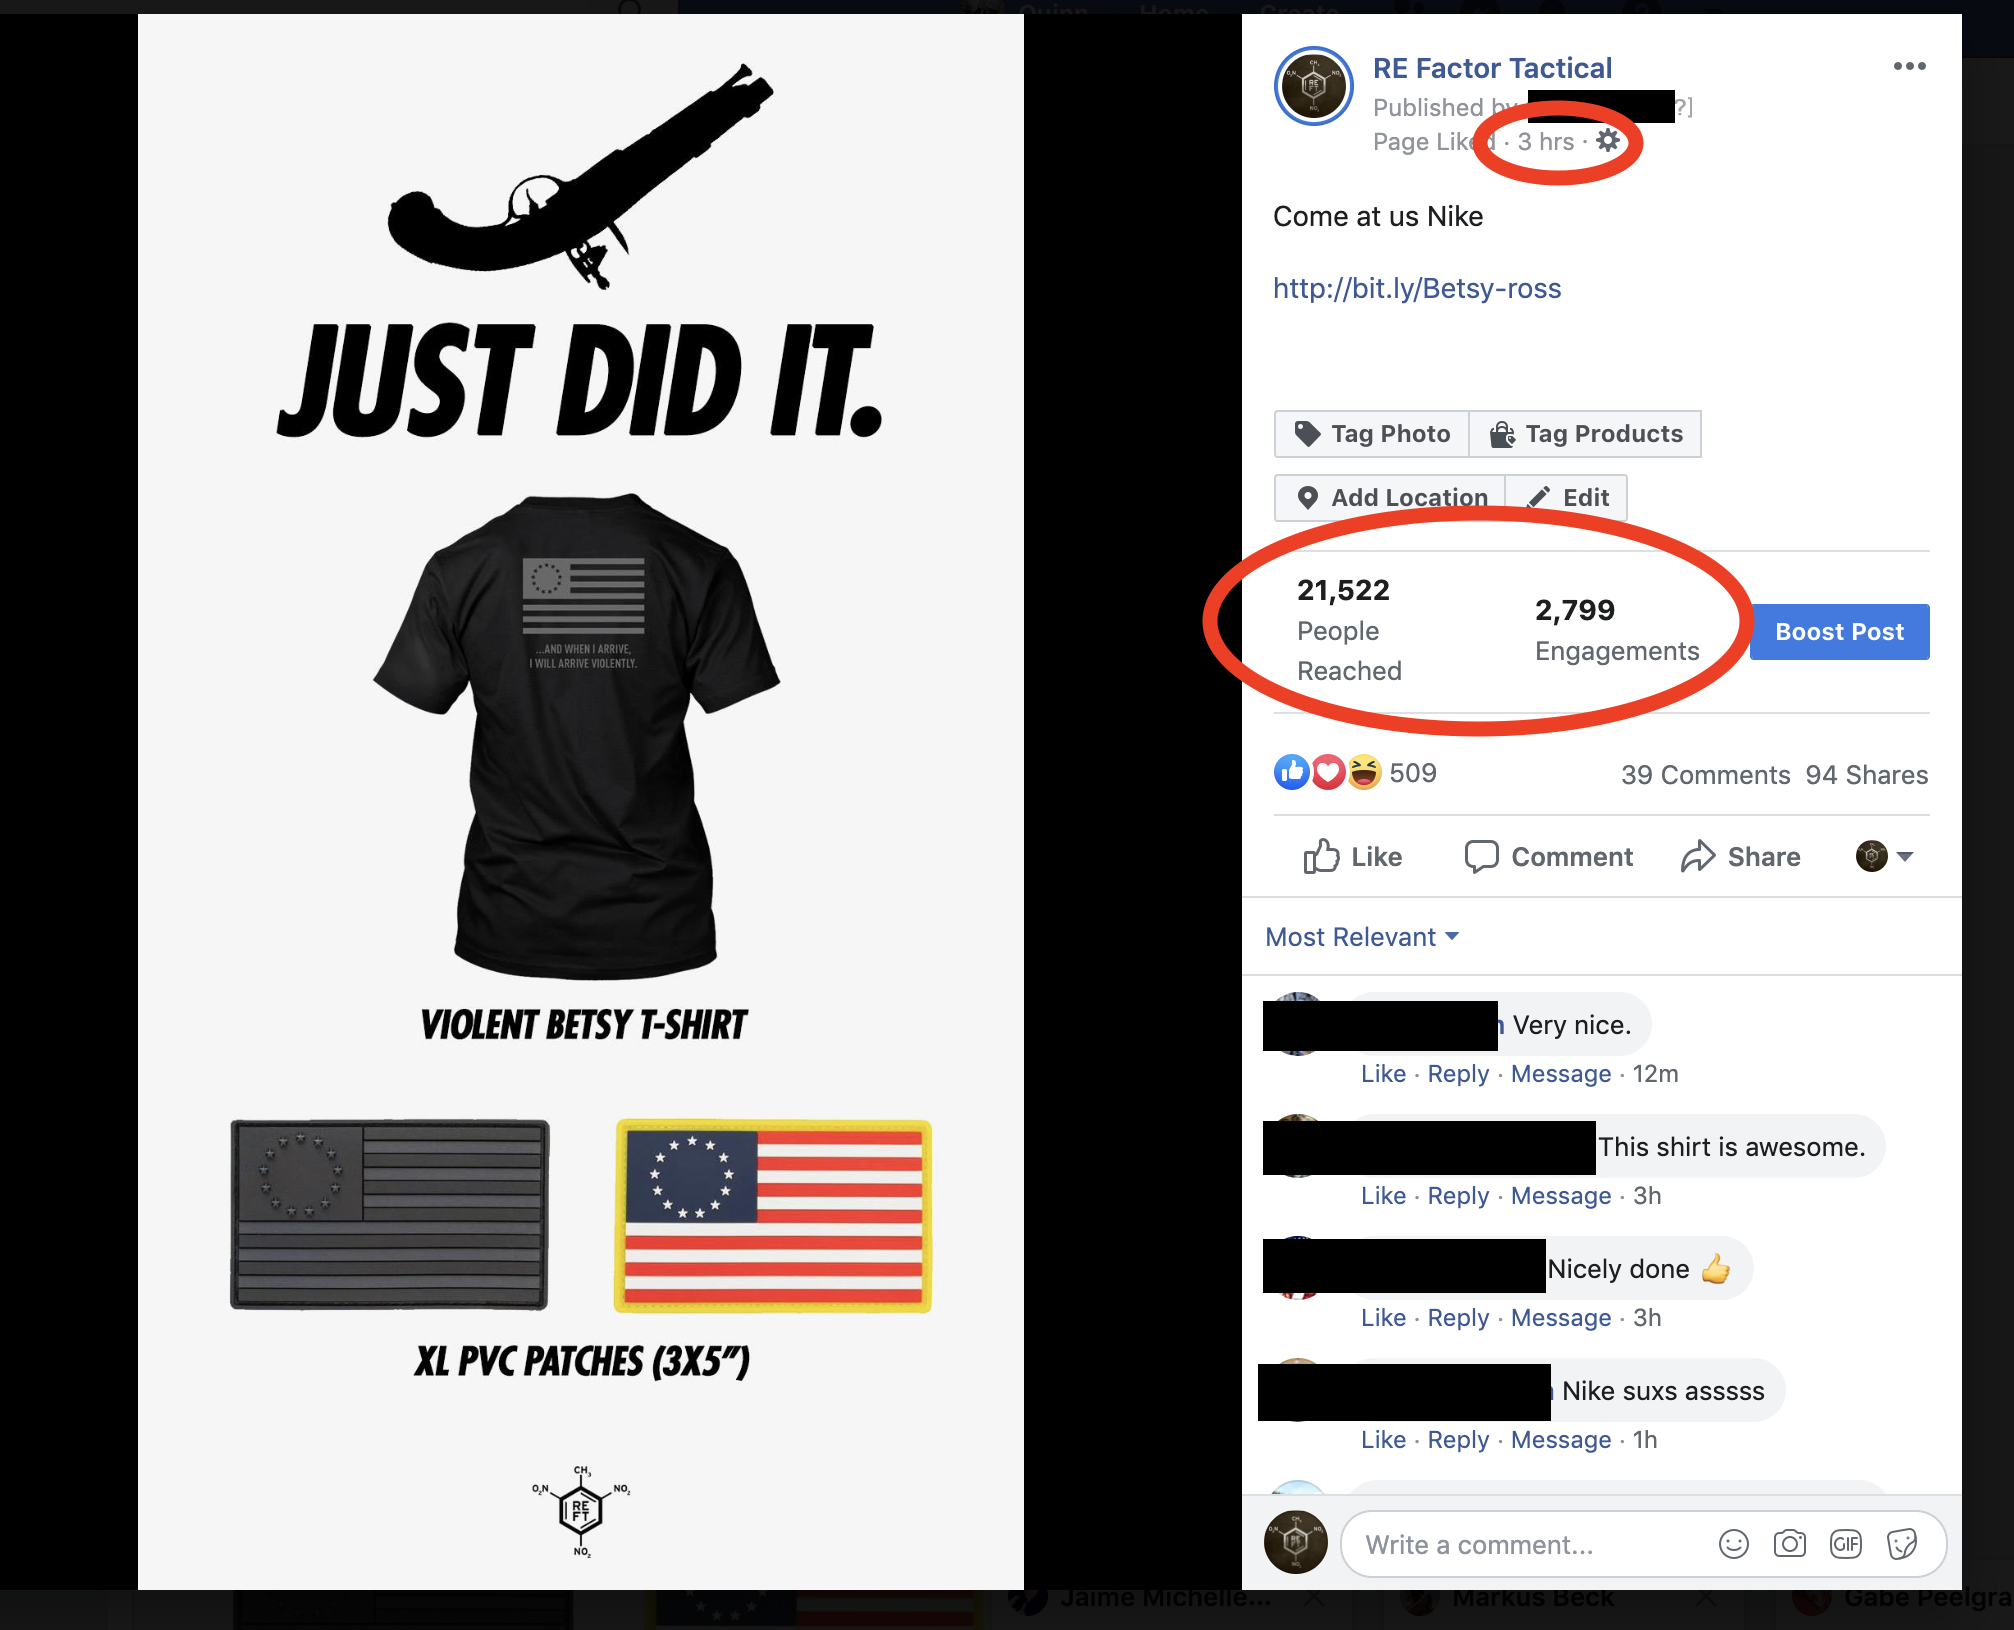 Posted on the  RE Factor Tactical Facebook Page  (you can see the direct results through this link)